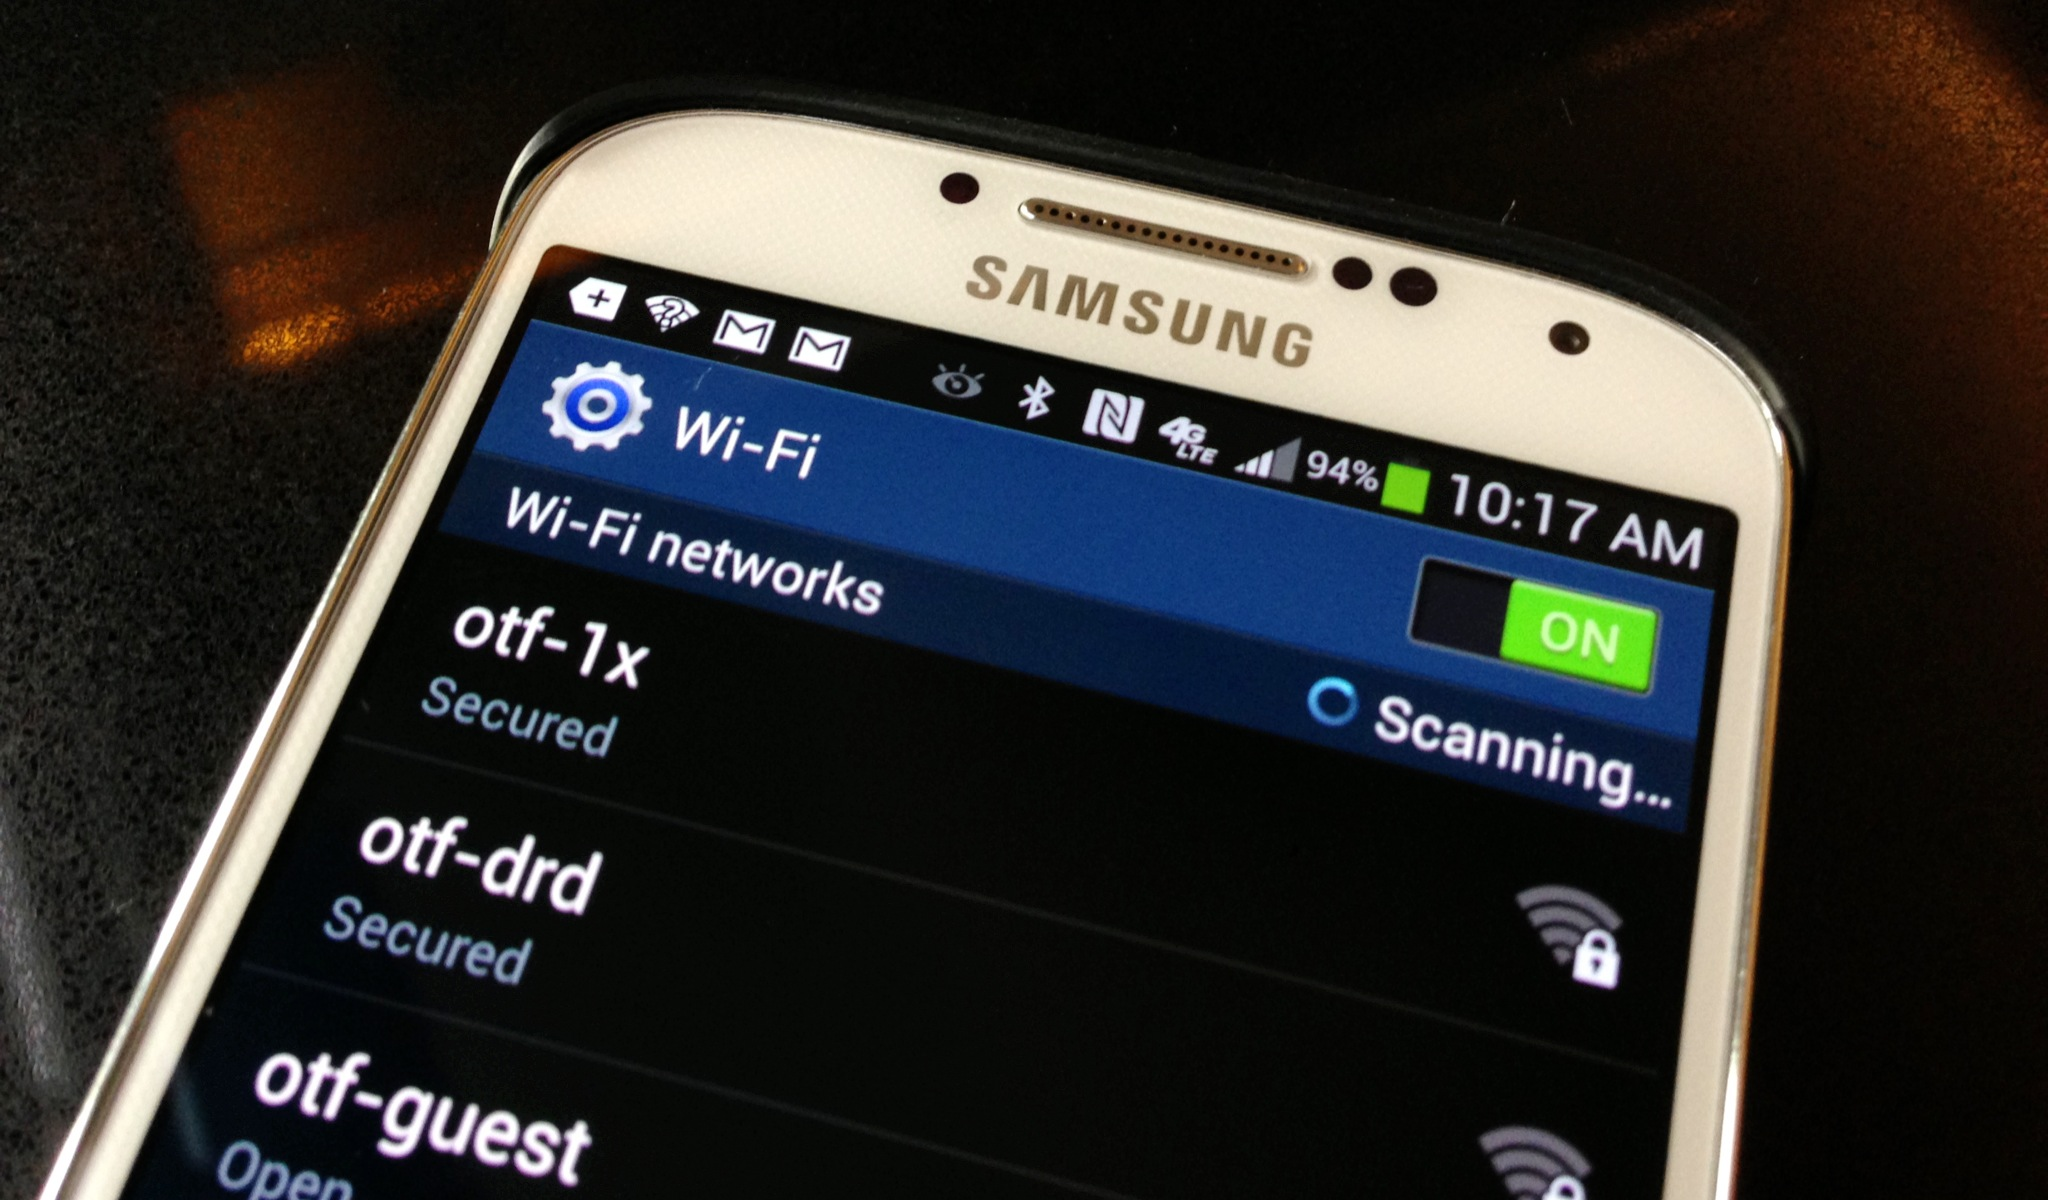 Fix Samsung Galaxy S4 WiFi problems with a few simple steps. If that fails, users may need to buy a new router.